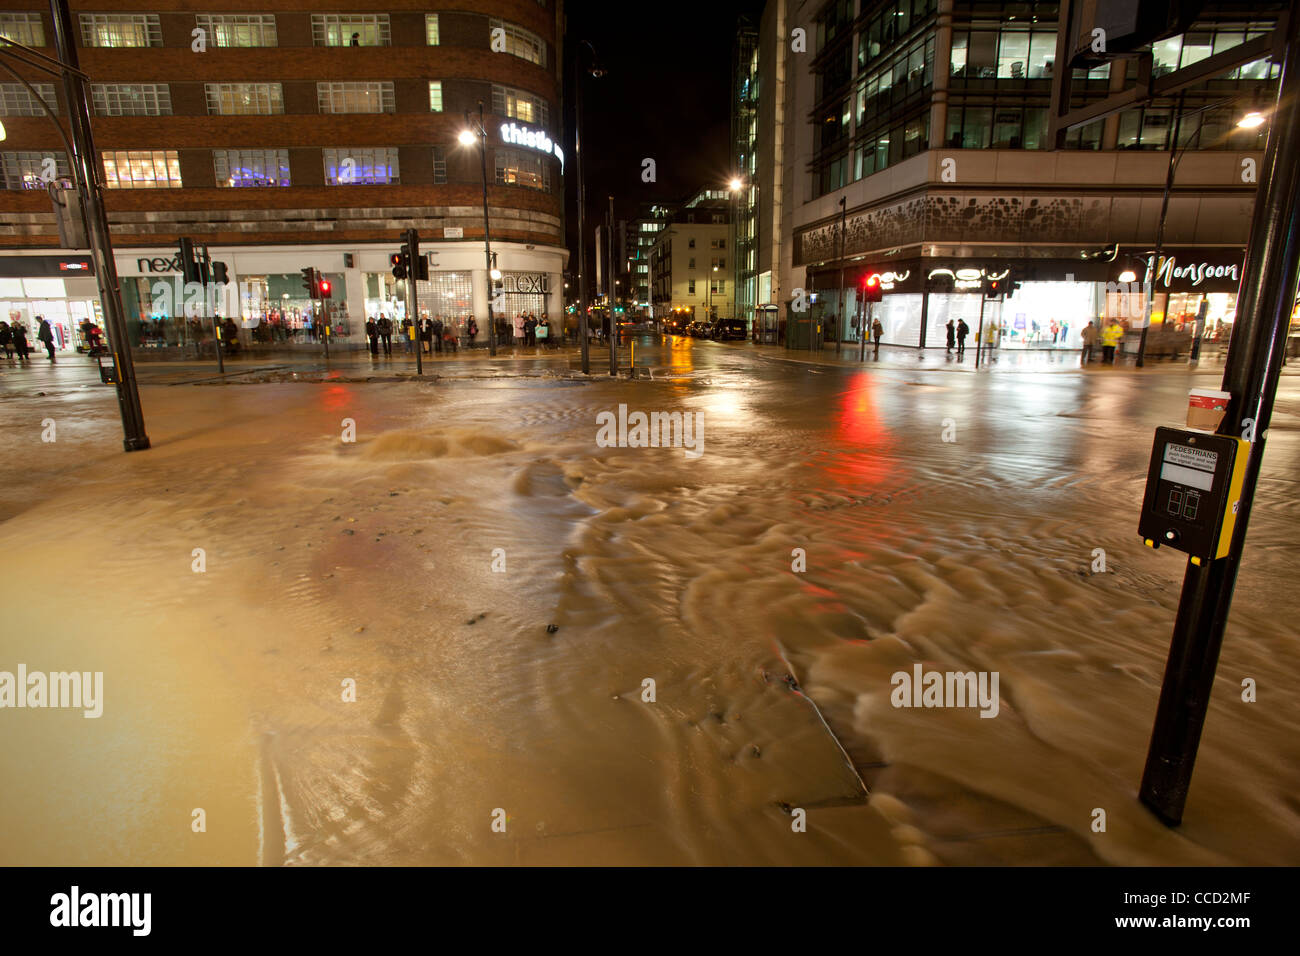 Water welling up on Oxford Street after water mains burst, 19th January 2012, London, UK. - Stock Image